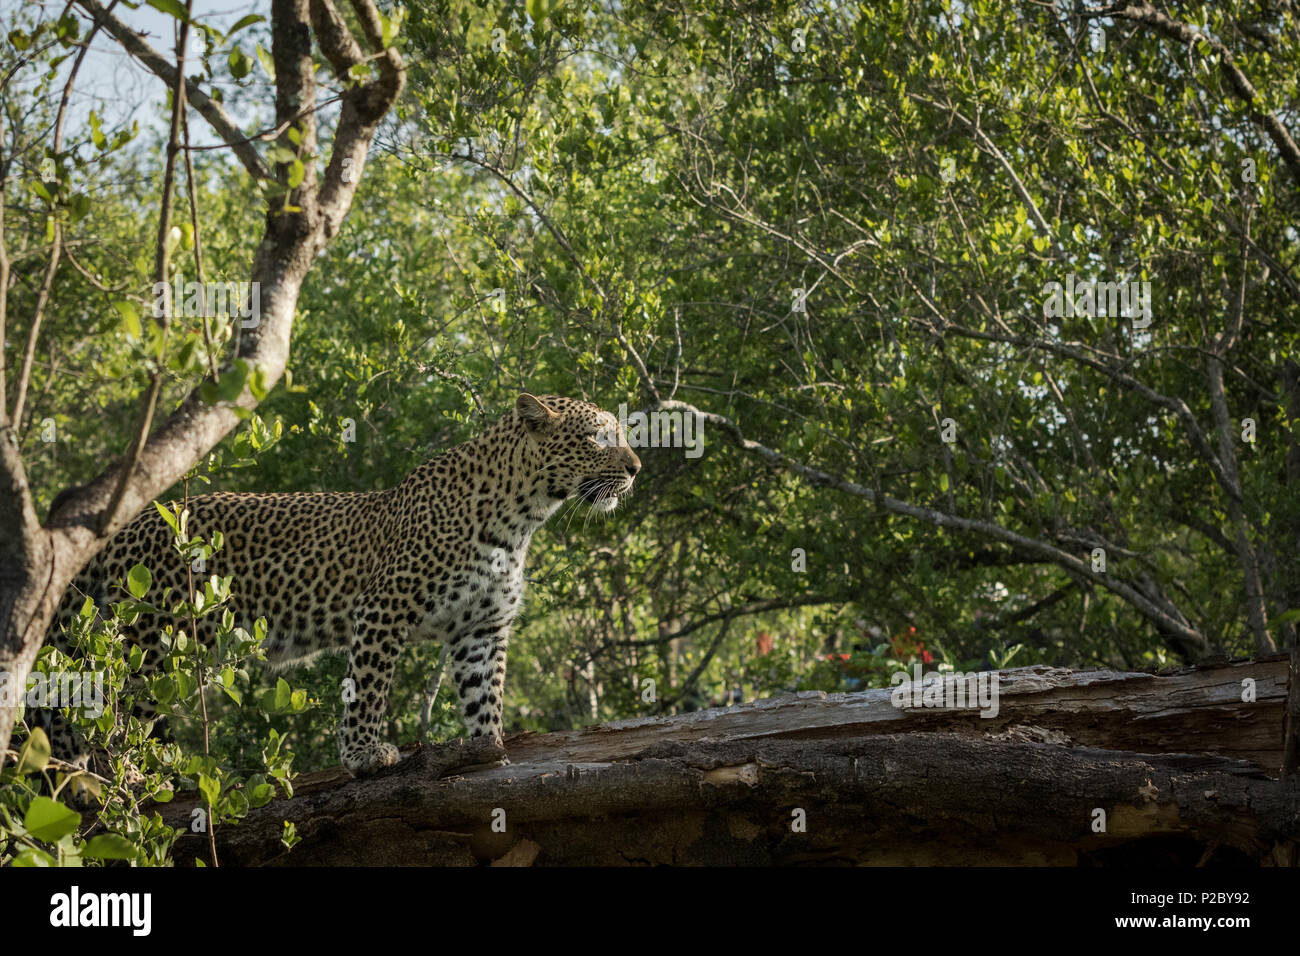 Adult female leopard standing on a branch in search of her next meal. - Stock Image